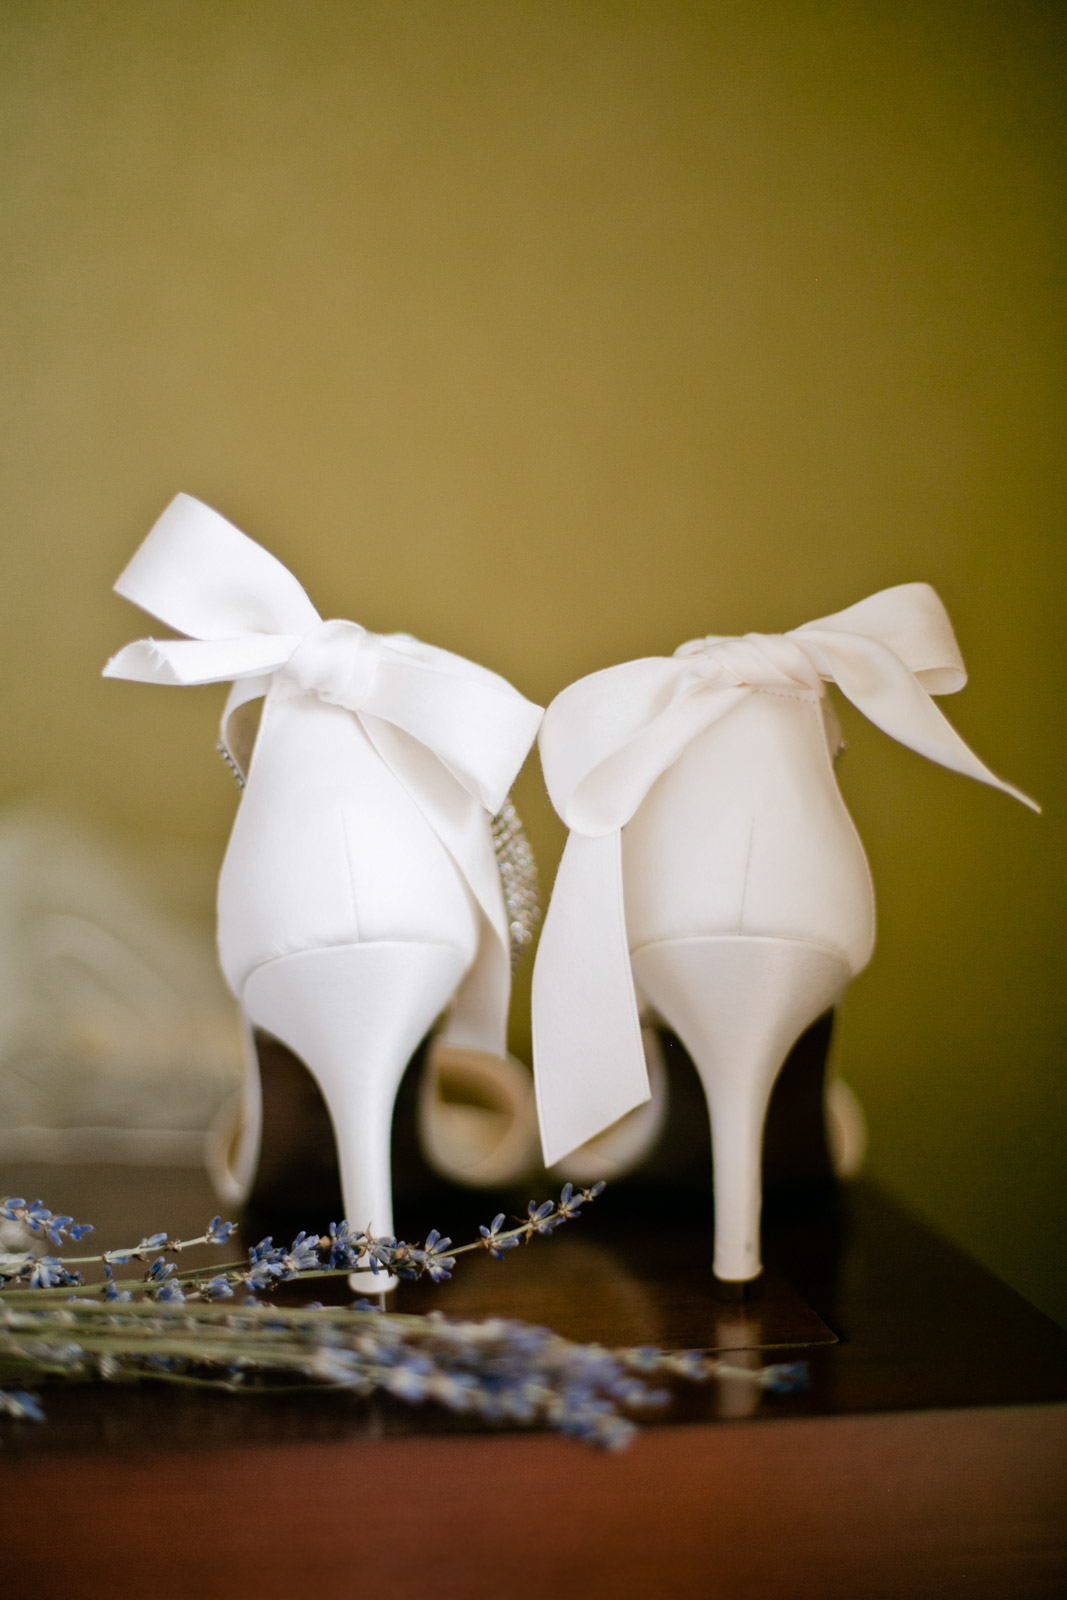 ivory bridal shoes complete with bows over the back of the shoe sit side by side. Design by Mina of New York